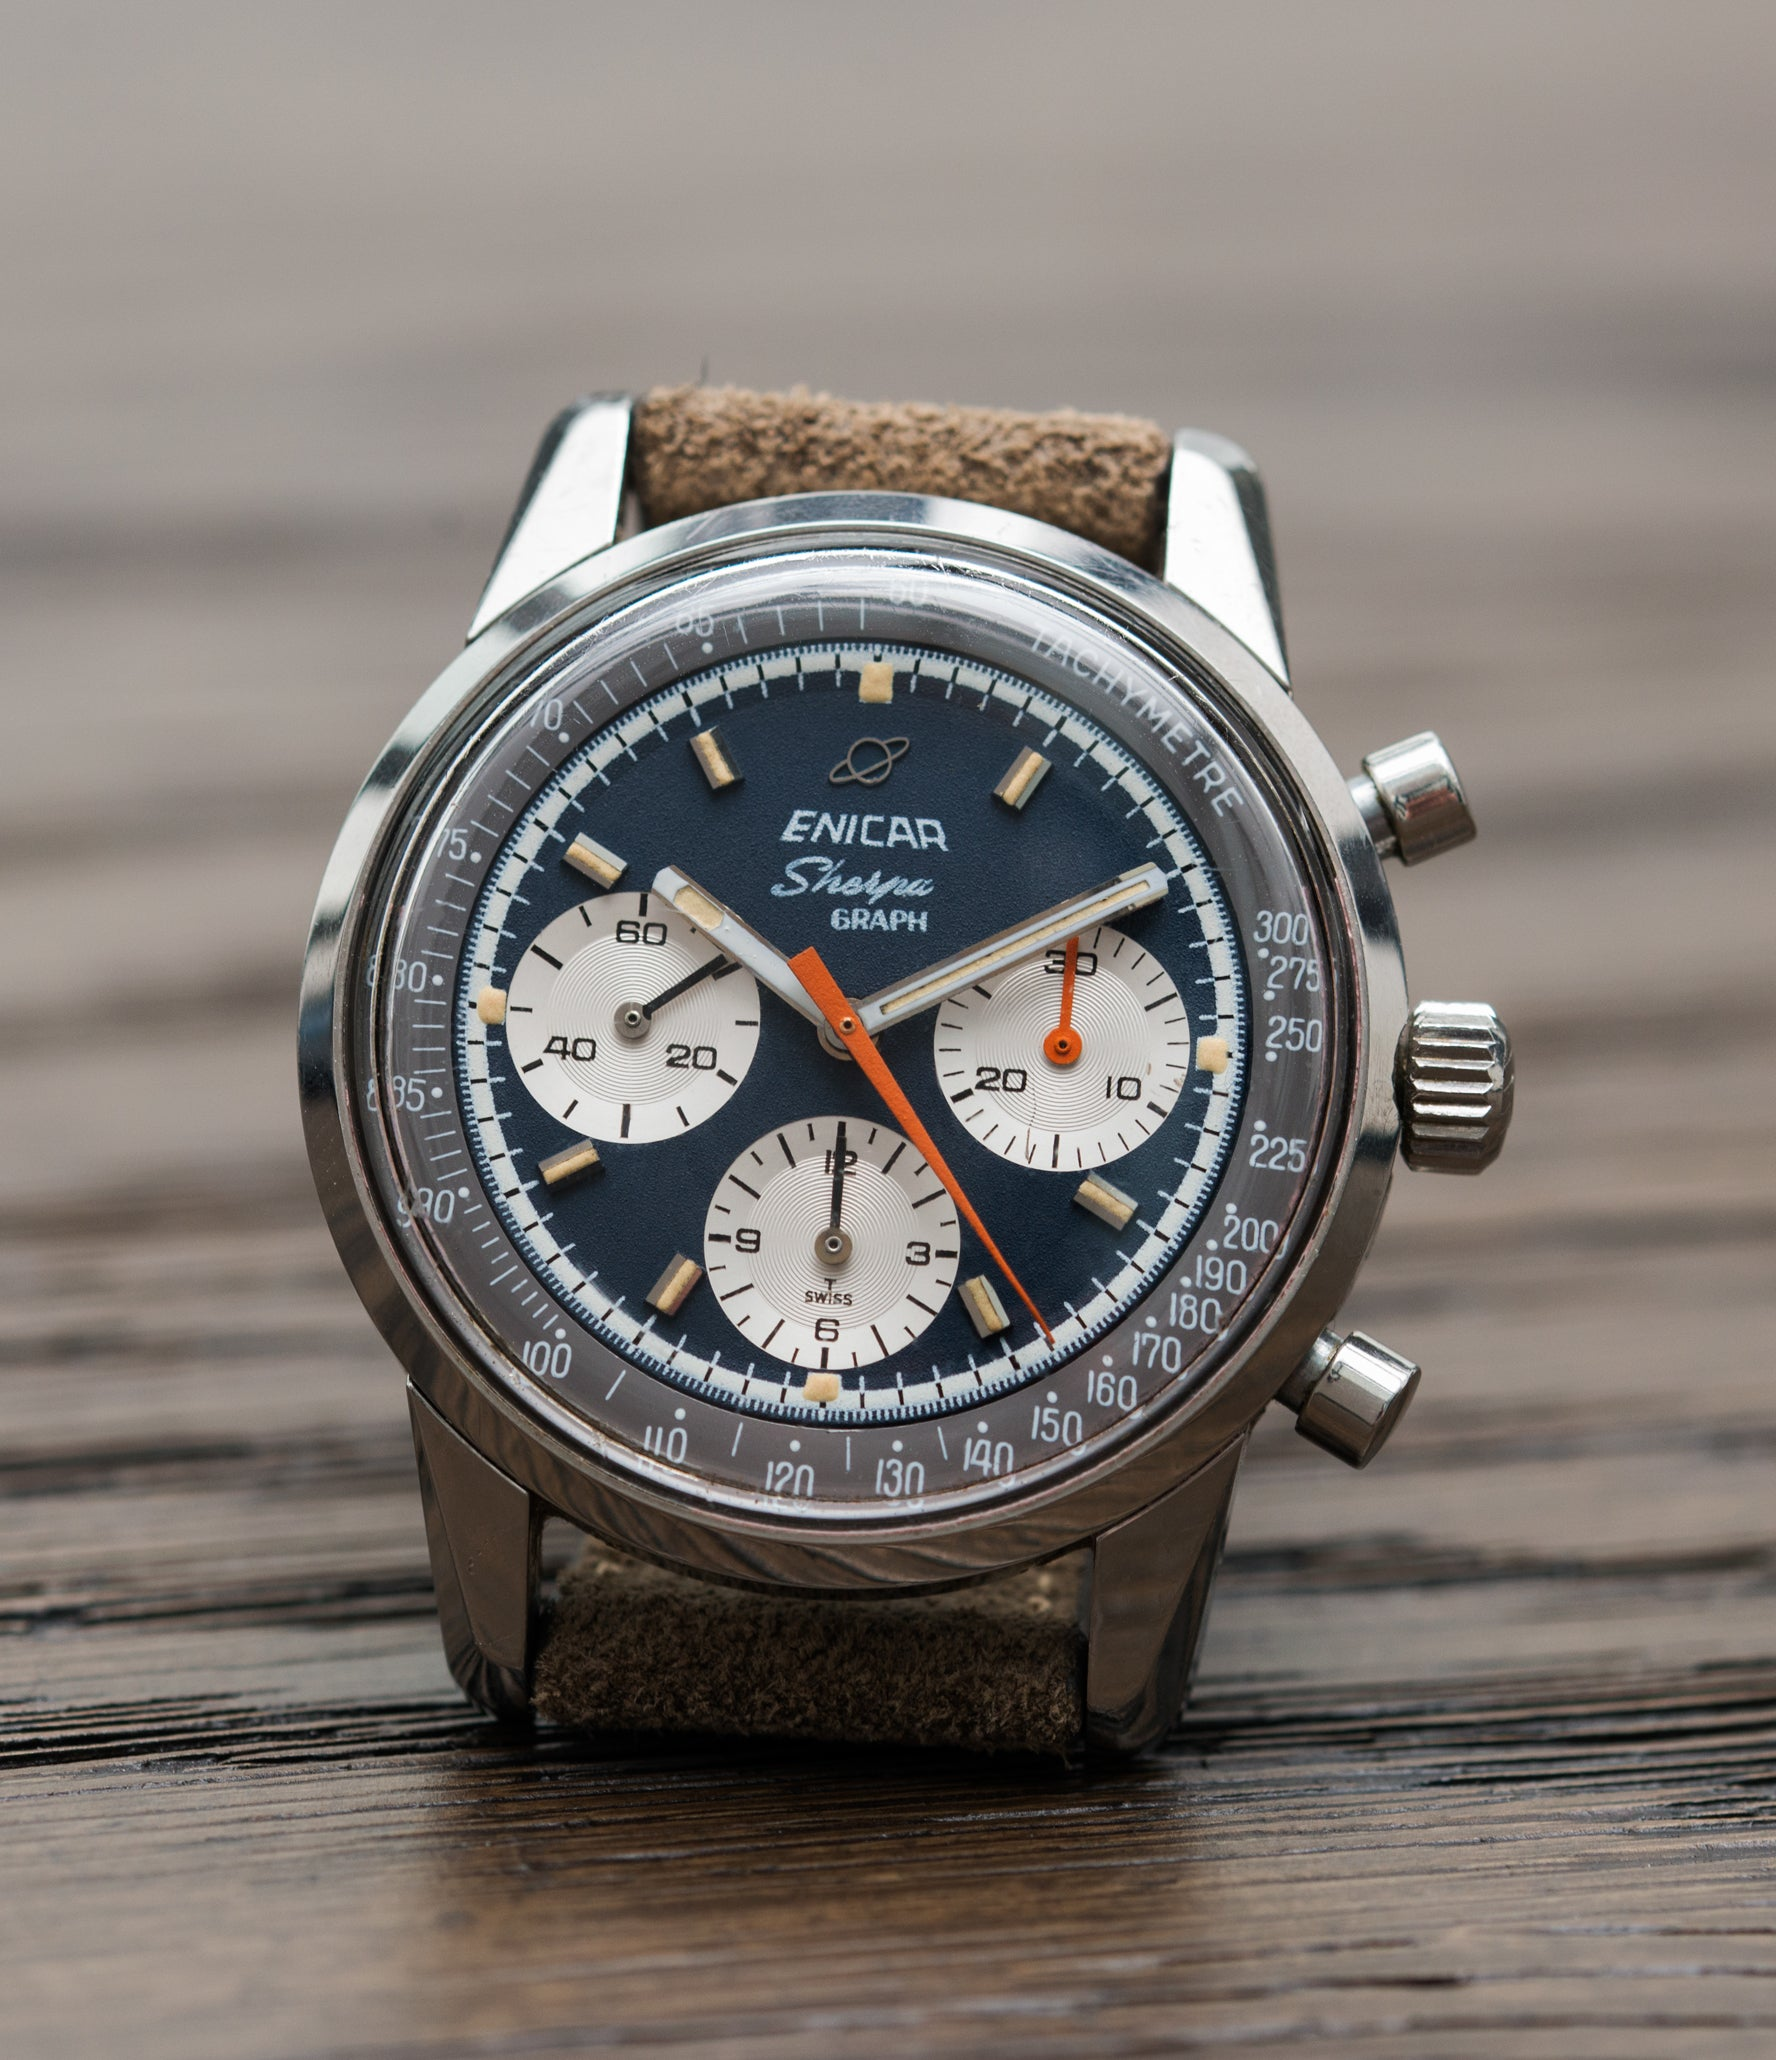 selling Enicar Sherpa Graph 300 Ref. 072-02-01 vintage steel chronograph sport racing watch for sale online at A Collected Man London UK vintage watch specialist